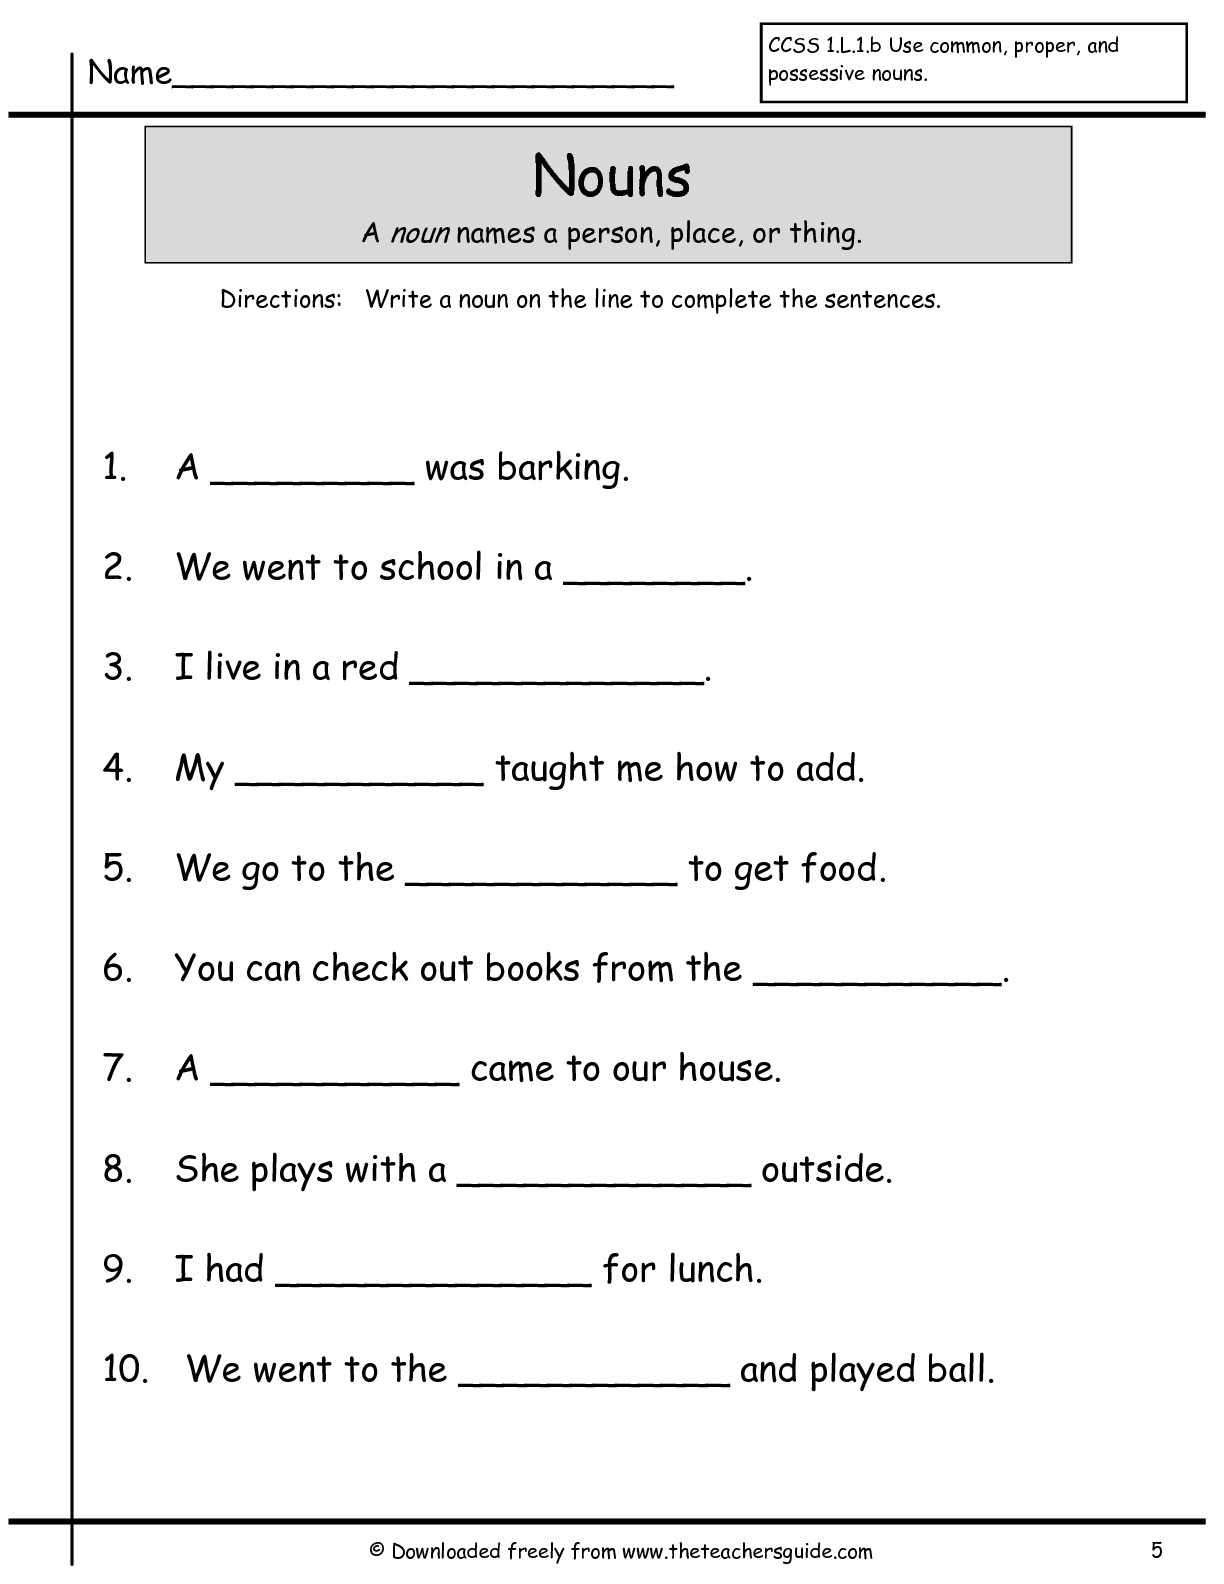 Printables First Grade Reading Printable Worksheets printables first grade reading printable worksheets 8 best images of games 1st